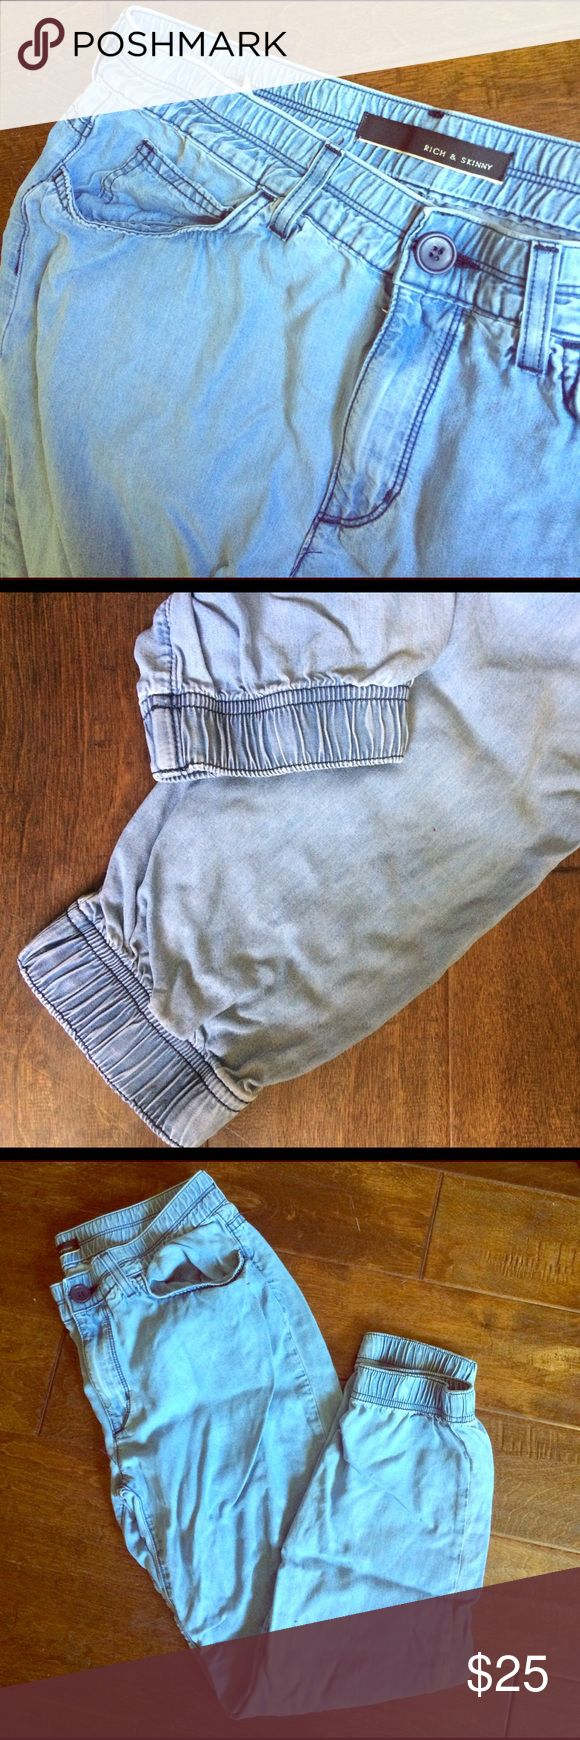 Chambray blue jean joggers - rich & skinny Light blue chambray baggy boyfriend jean joggers / lounge pants with drawstring and pockets in front and back. No damage or stains just needs to be ironed Rich & Skinny Pants Track Pants & Joggers